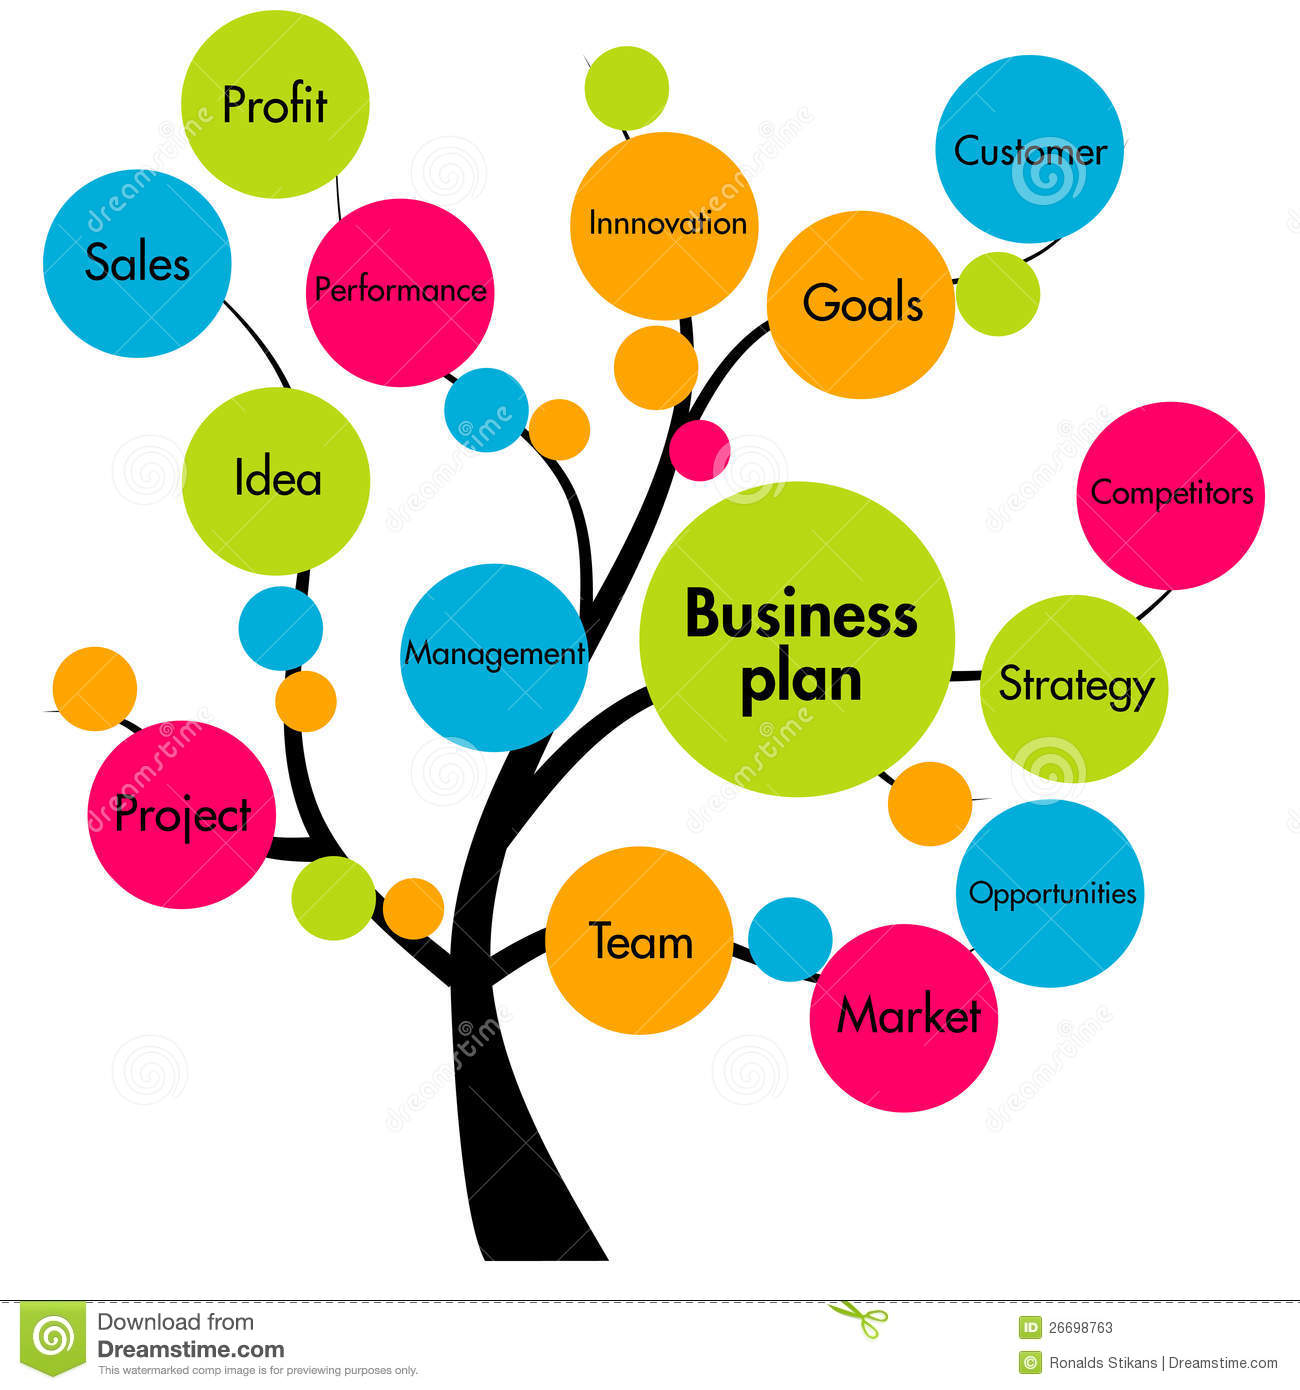 business plan management A management plan provides researchers the opportunity to explain the objectives, goals, and planned procedures of their proposed projects in detail.